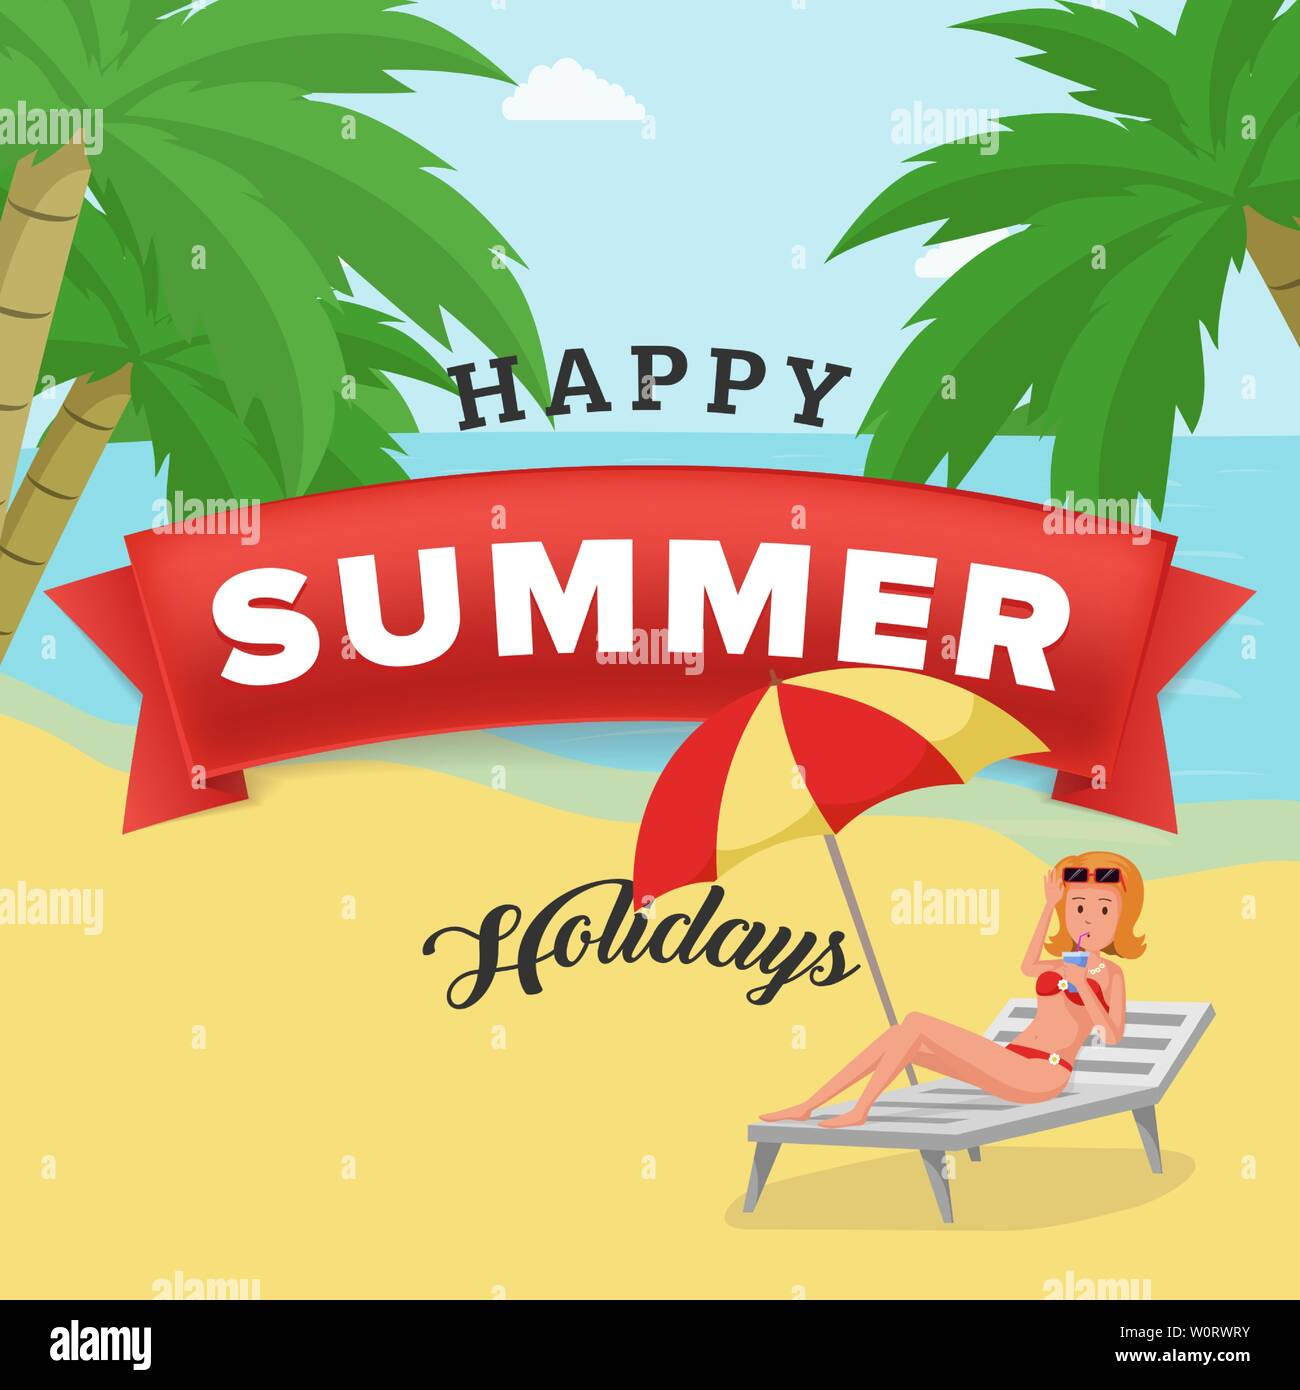 Happy summer holidays vector poster template. Elegant girl, holidaymaker drinking cocktail on deck chair with beach umbrella. Seaside resort promotion, travel agency advert for social media post - Stock Vector